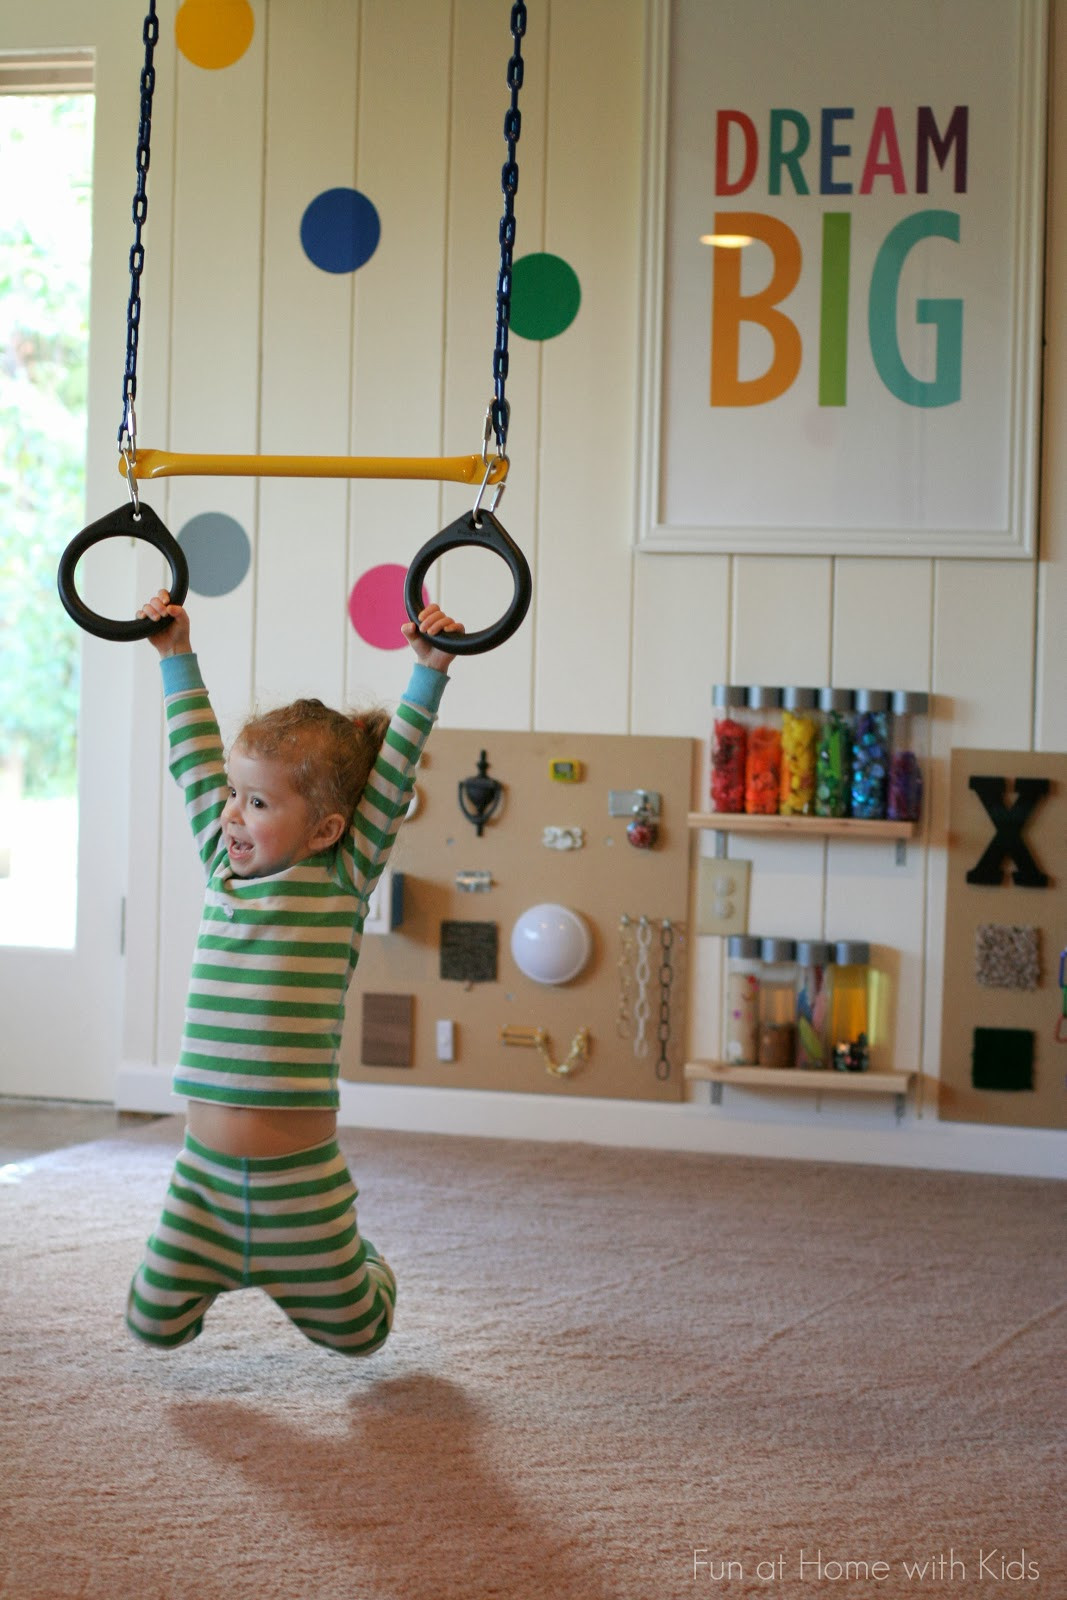 Best ideas about DIY Kids Playrooms . Save or Pin Playroom Design DIY Playroom with Rock Wall Now.